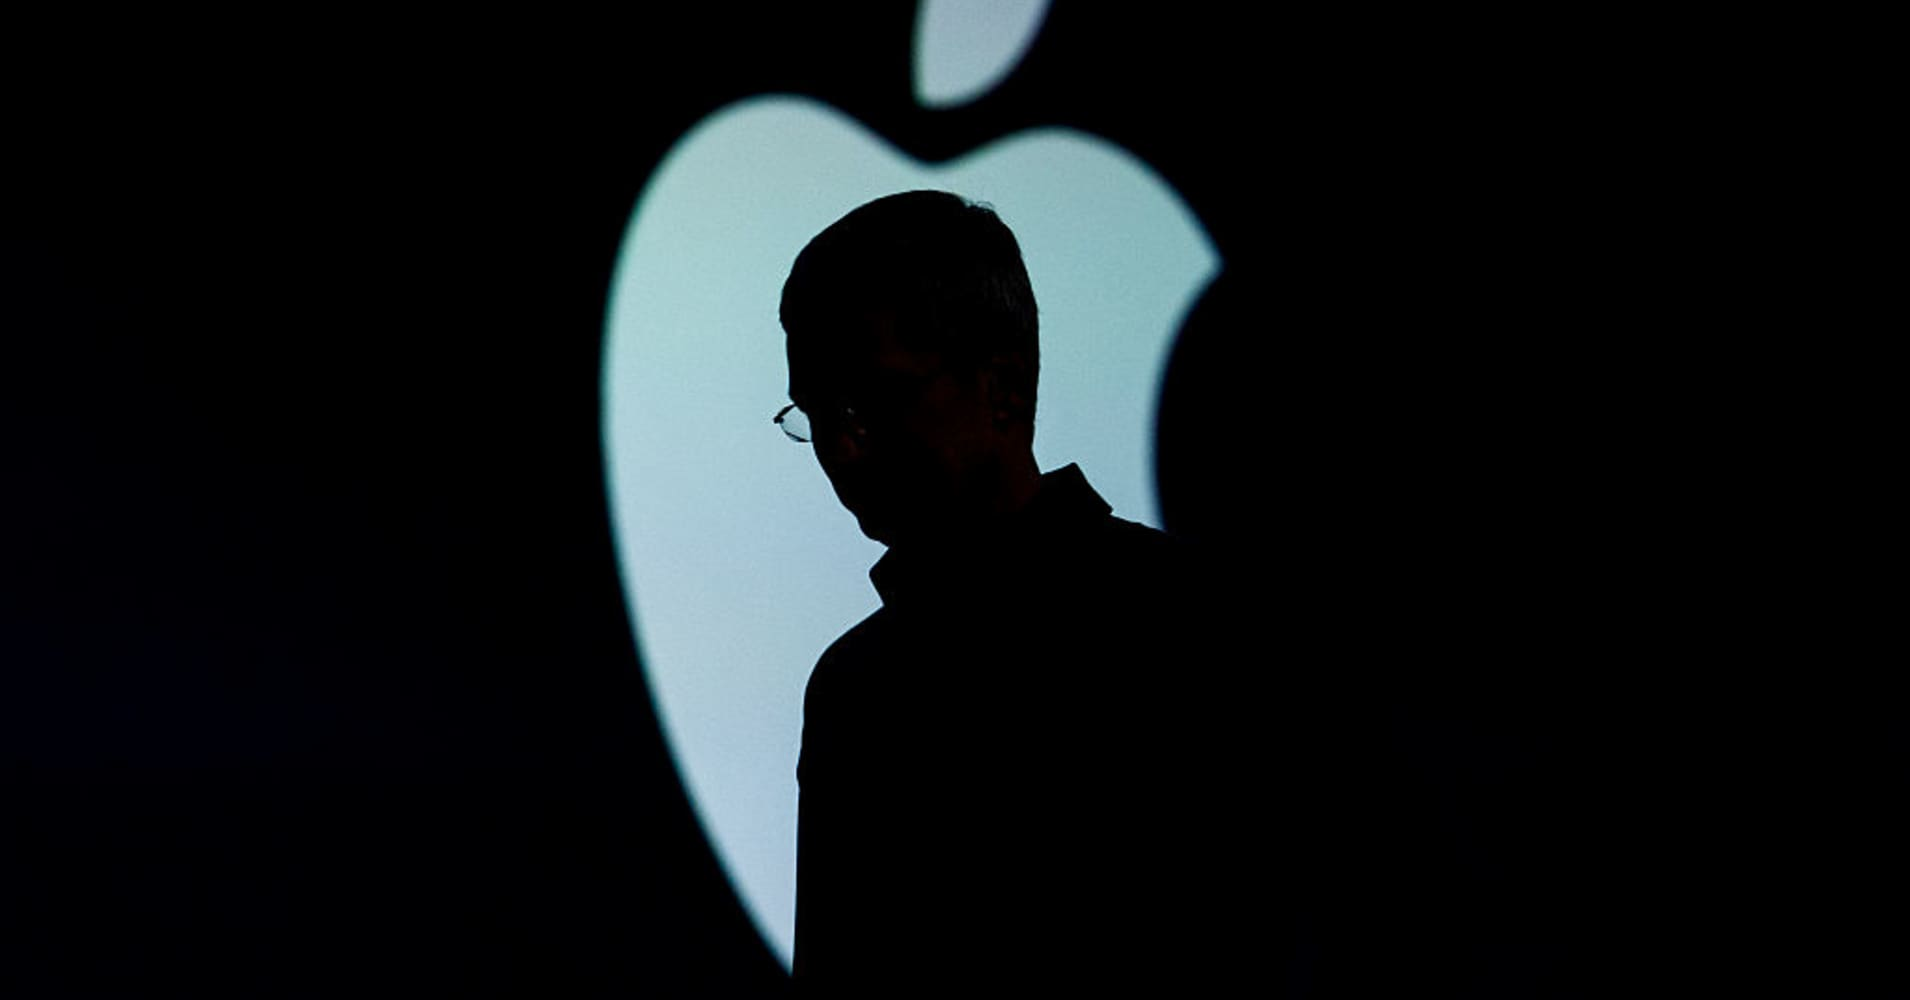 Apple and Qualcomm are about to begin their massive, multi-billion dollar patent trial